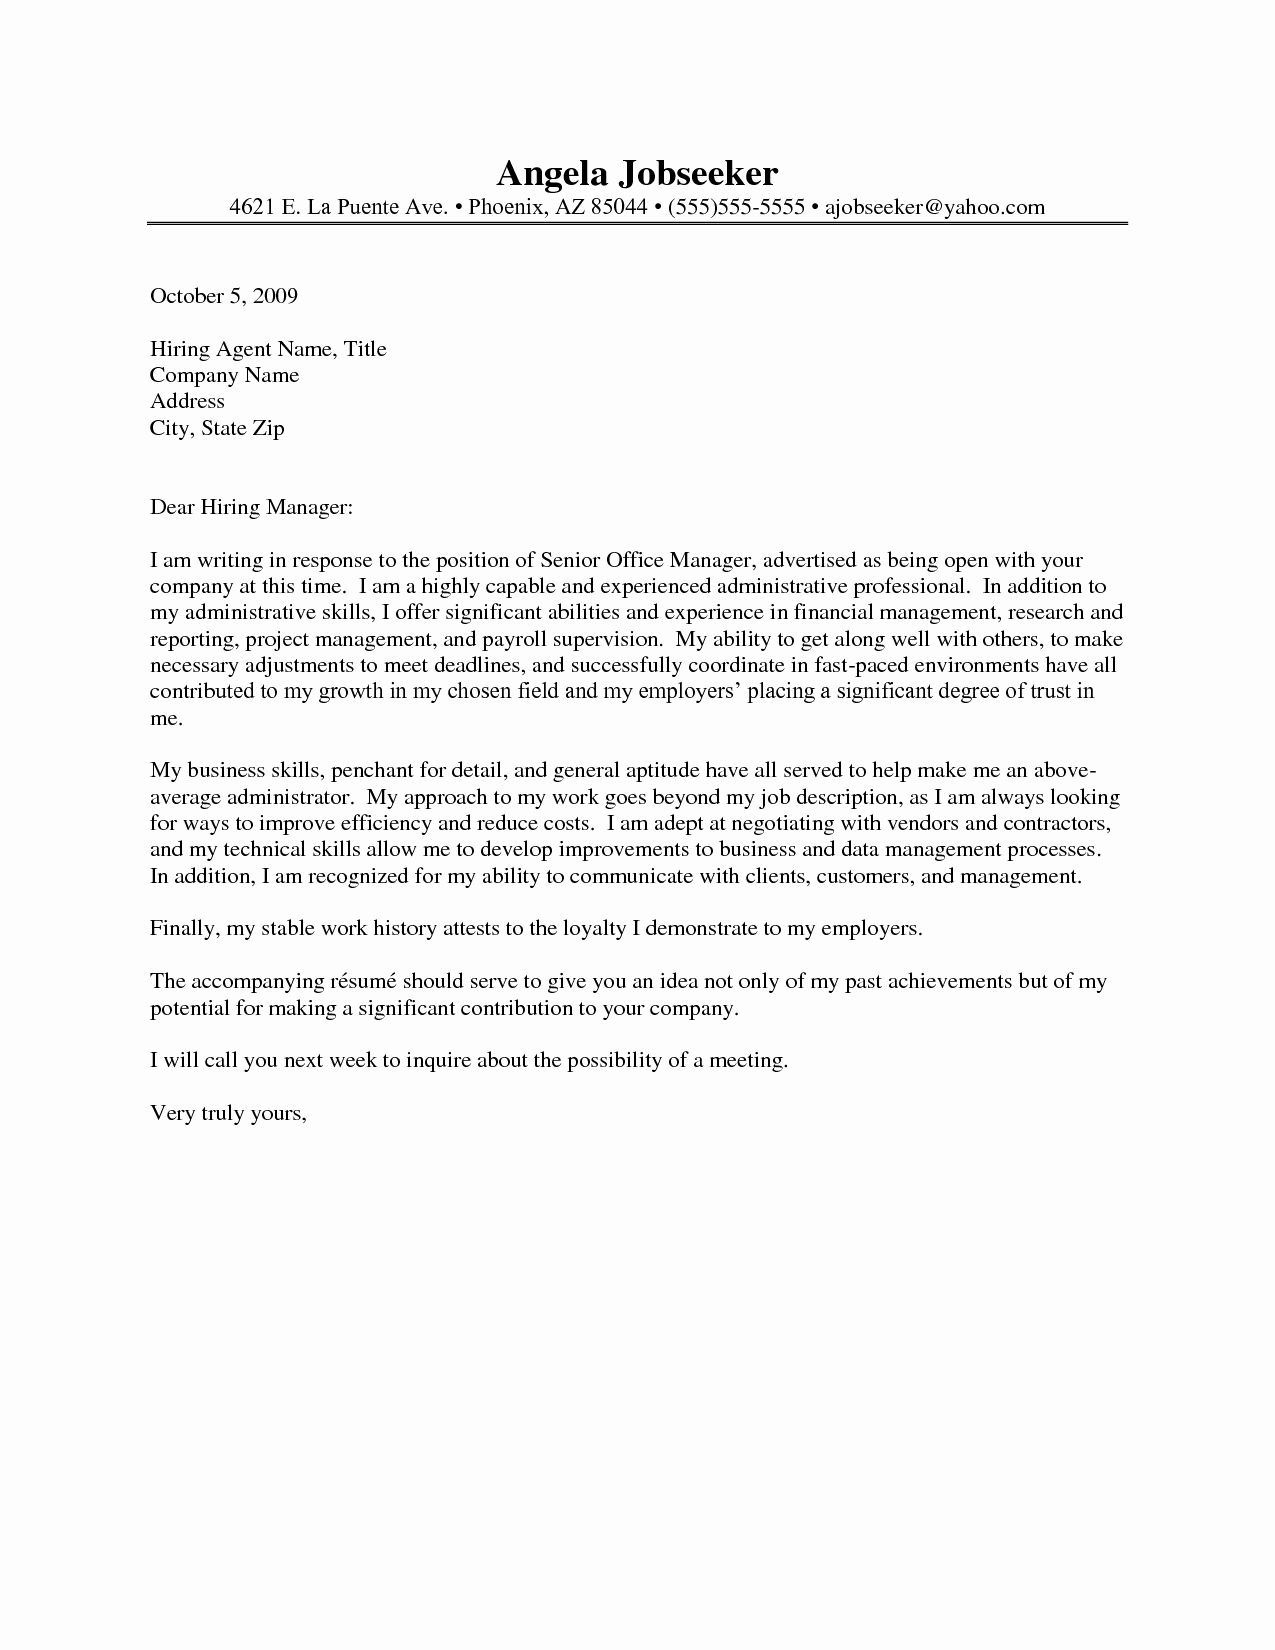 Cover Letter for Executive assistant Unique Administrative assistant Cover Letters 2016